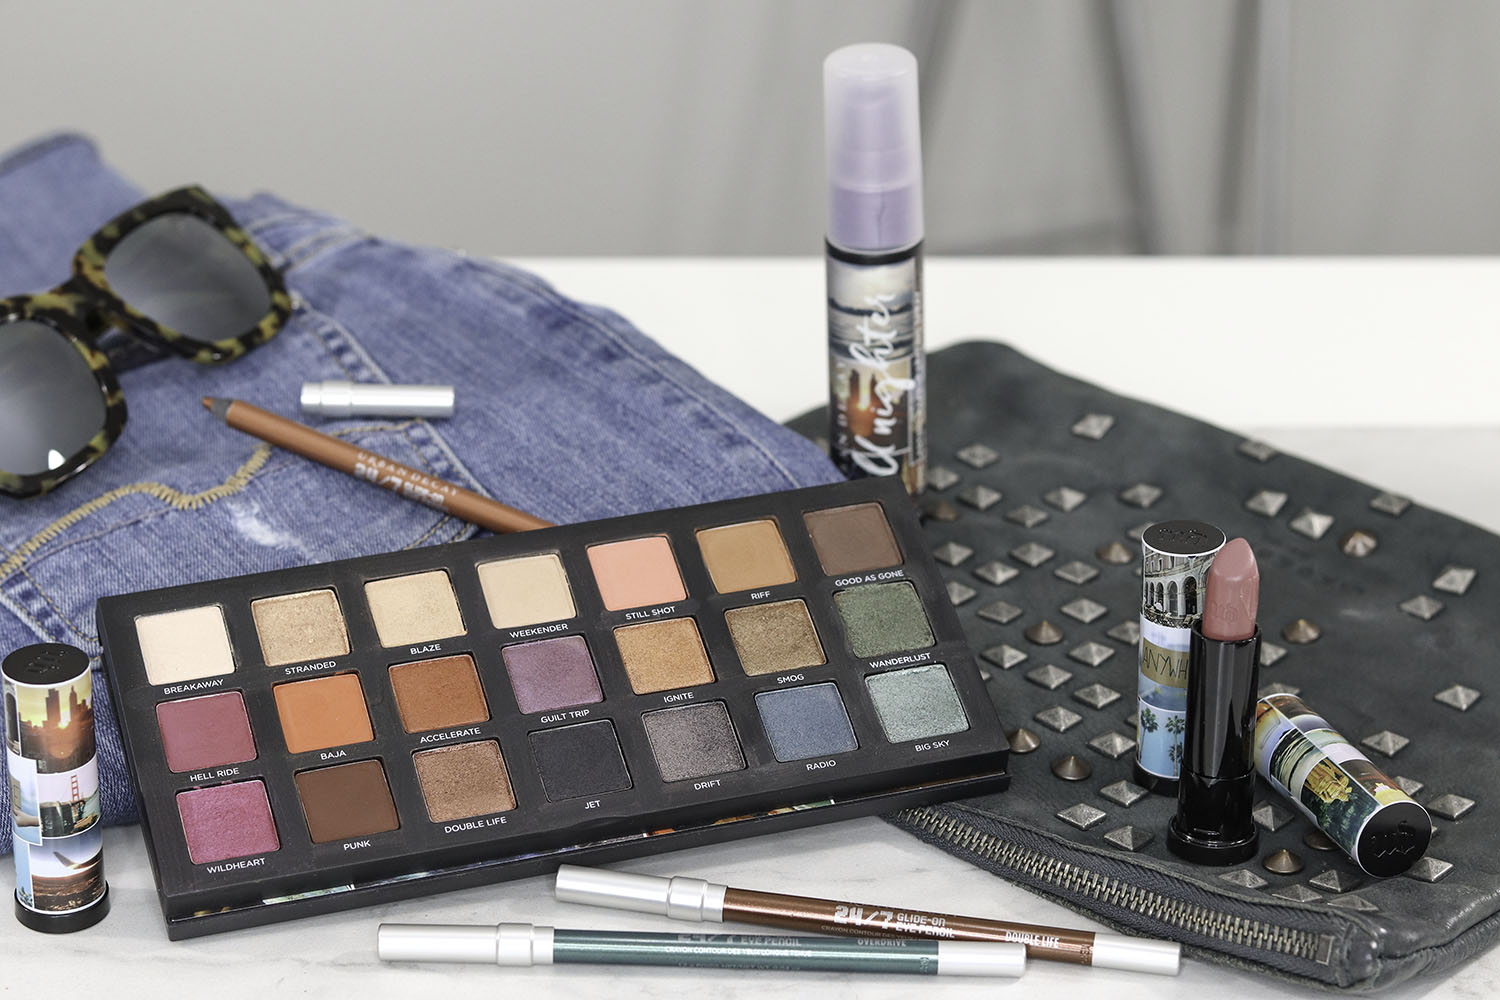 Born To Run All Nighter Makeup Setting Spray by Urban Decay #19